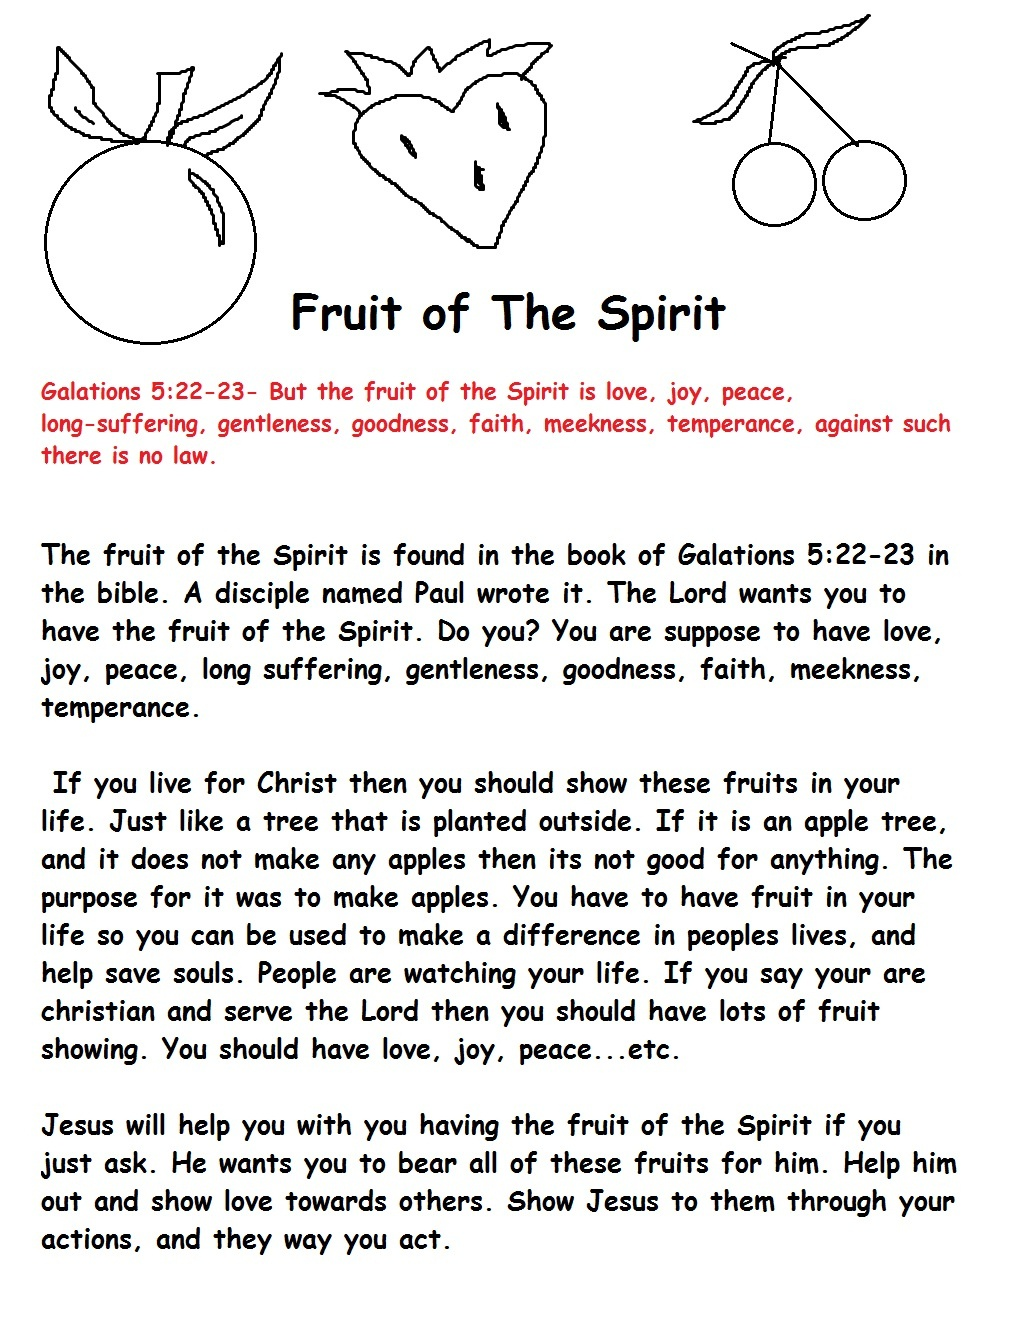 Fruit Of The Spirit Sunday School Lesson - Free Printable Sunday School Lessons For Kids